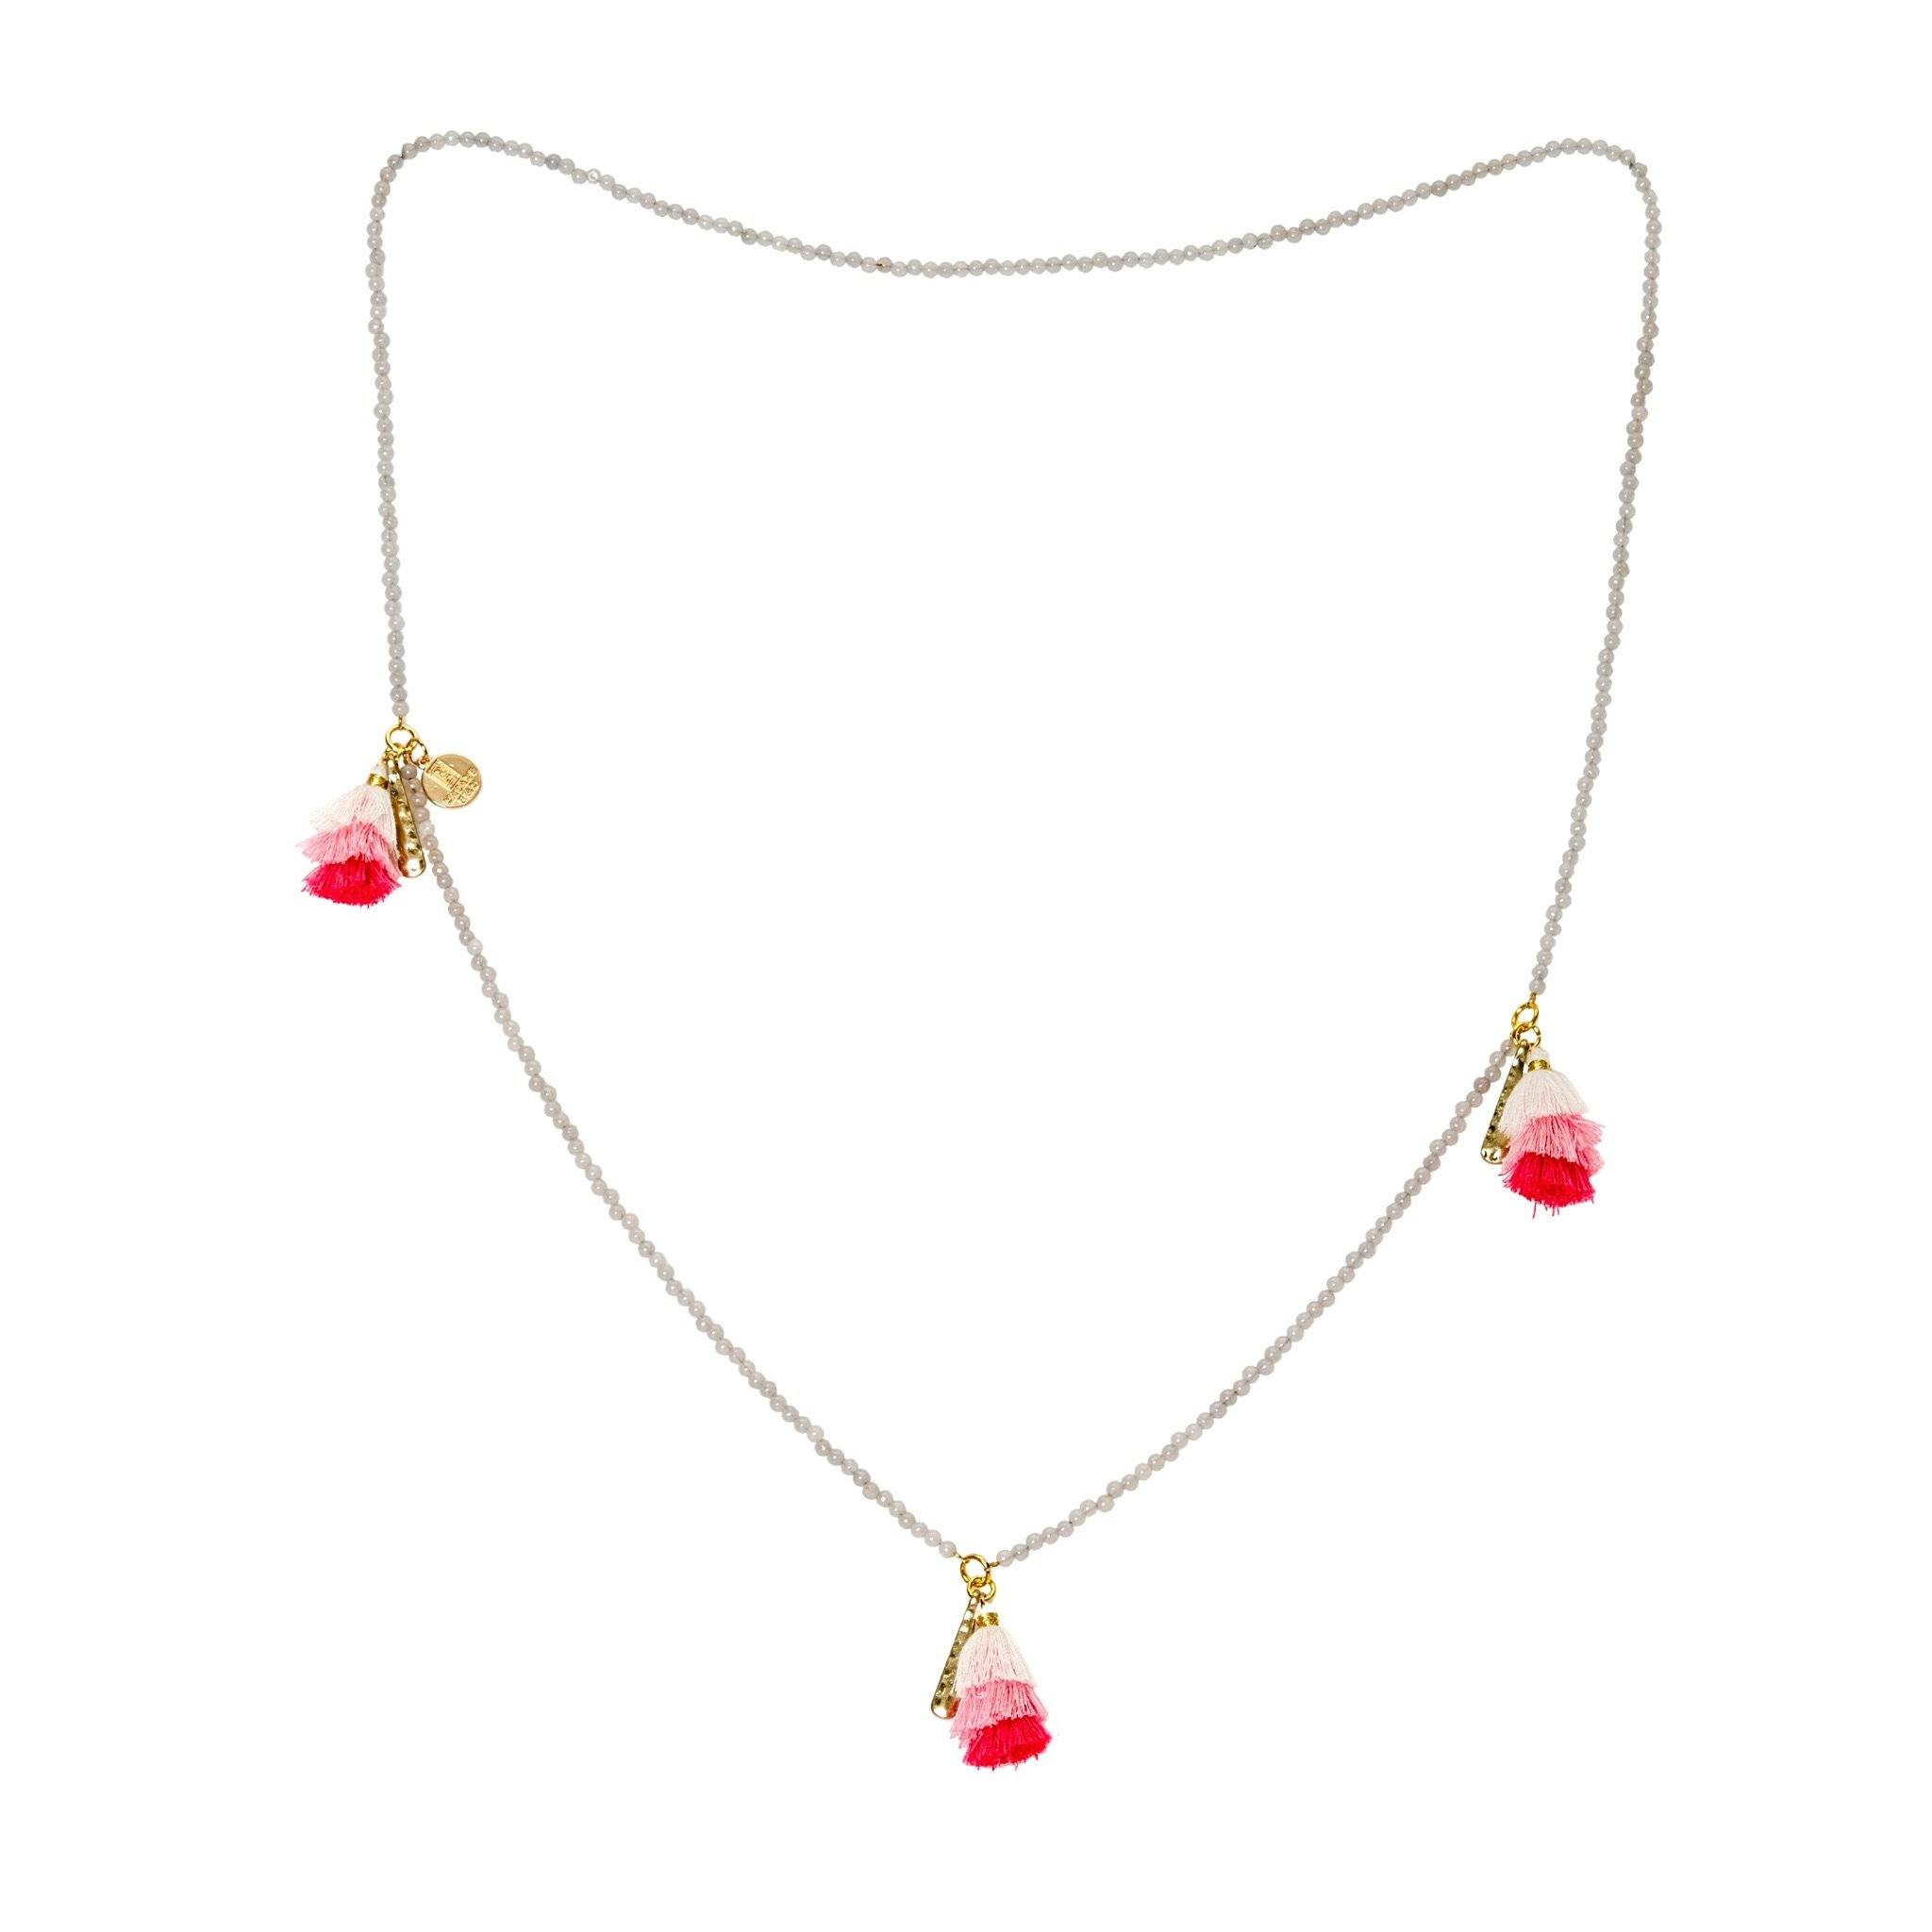 Praka moonstone and pink tassels necklace - MadamSiam